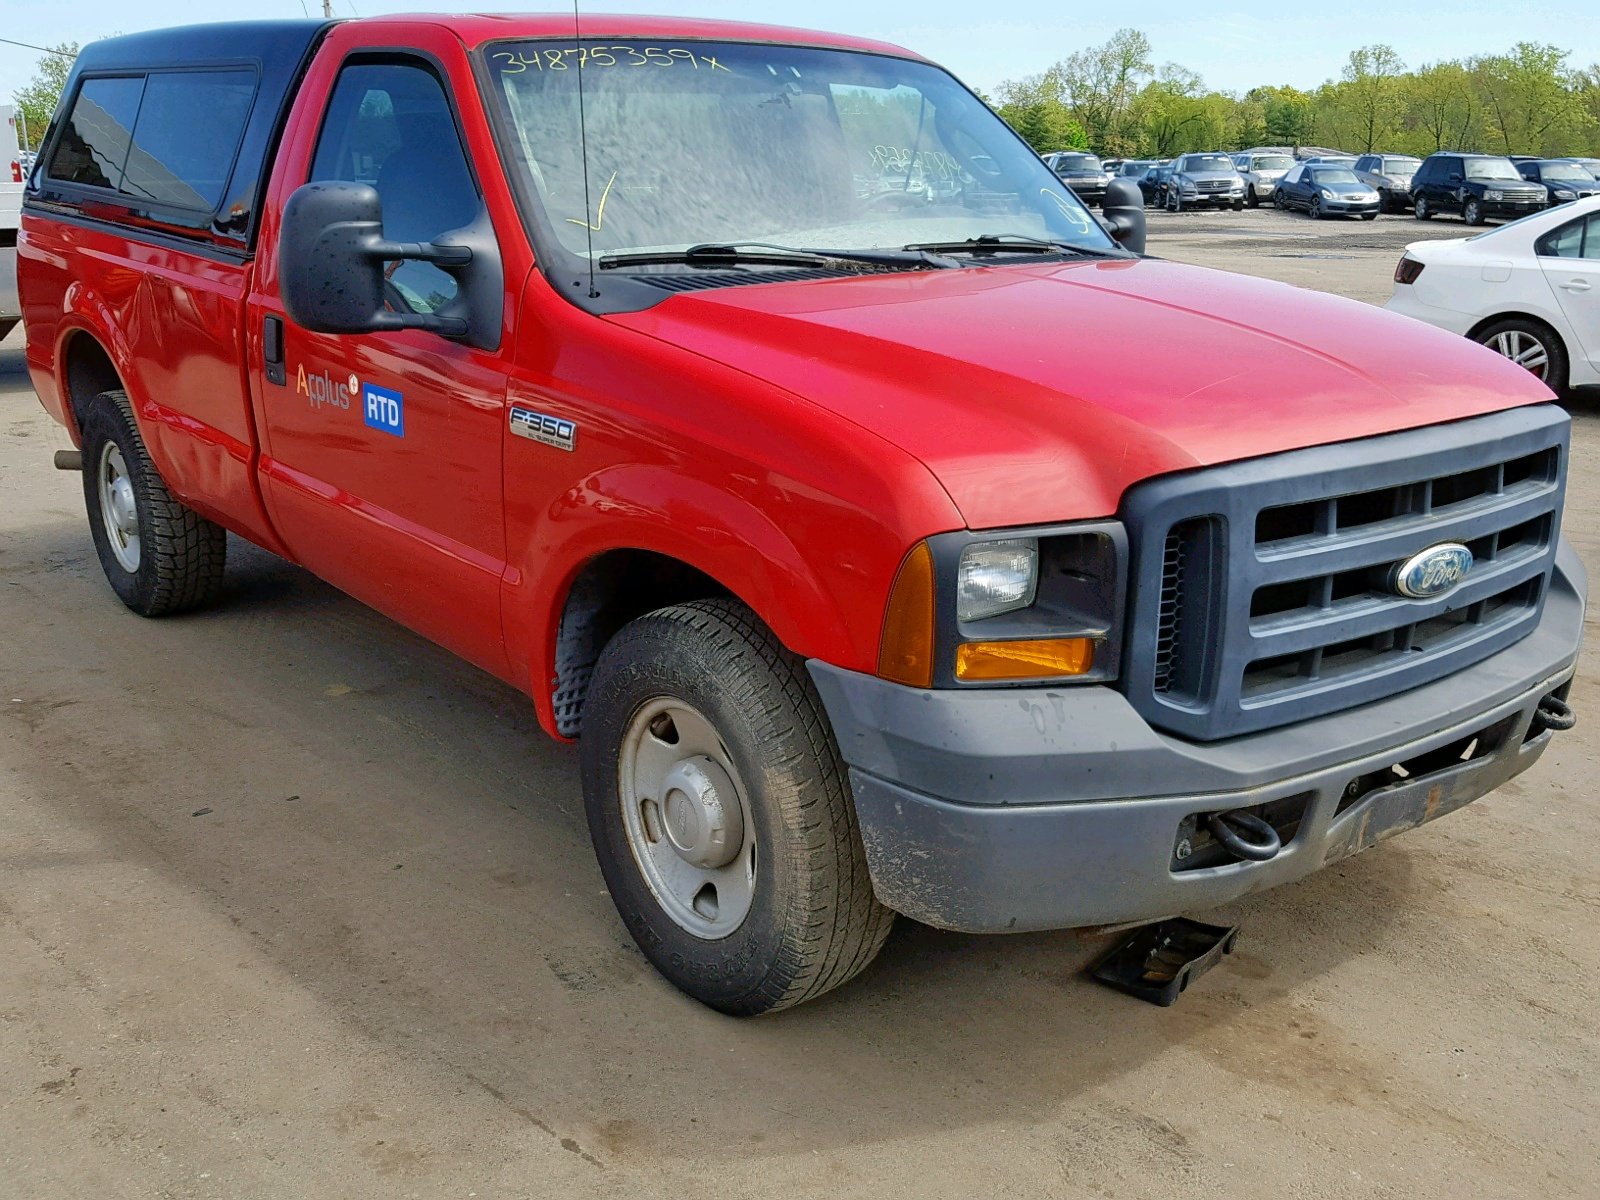 hight resolution of 1ftsf30546ed95705 2006 ford f350 srw s 5 4l left view 1ftsf30546ed95705